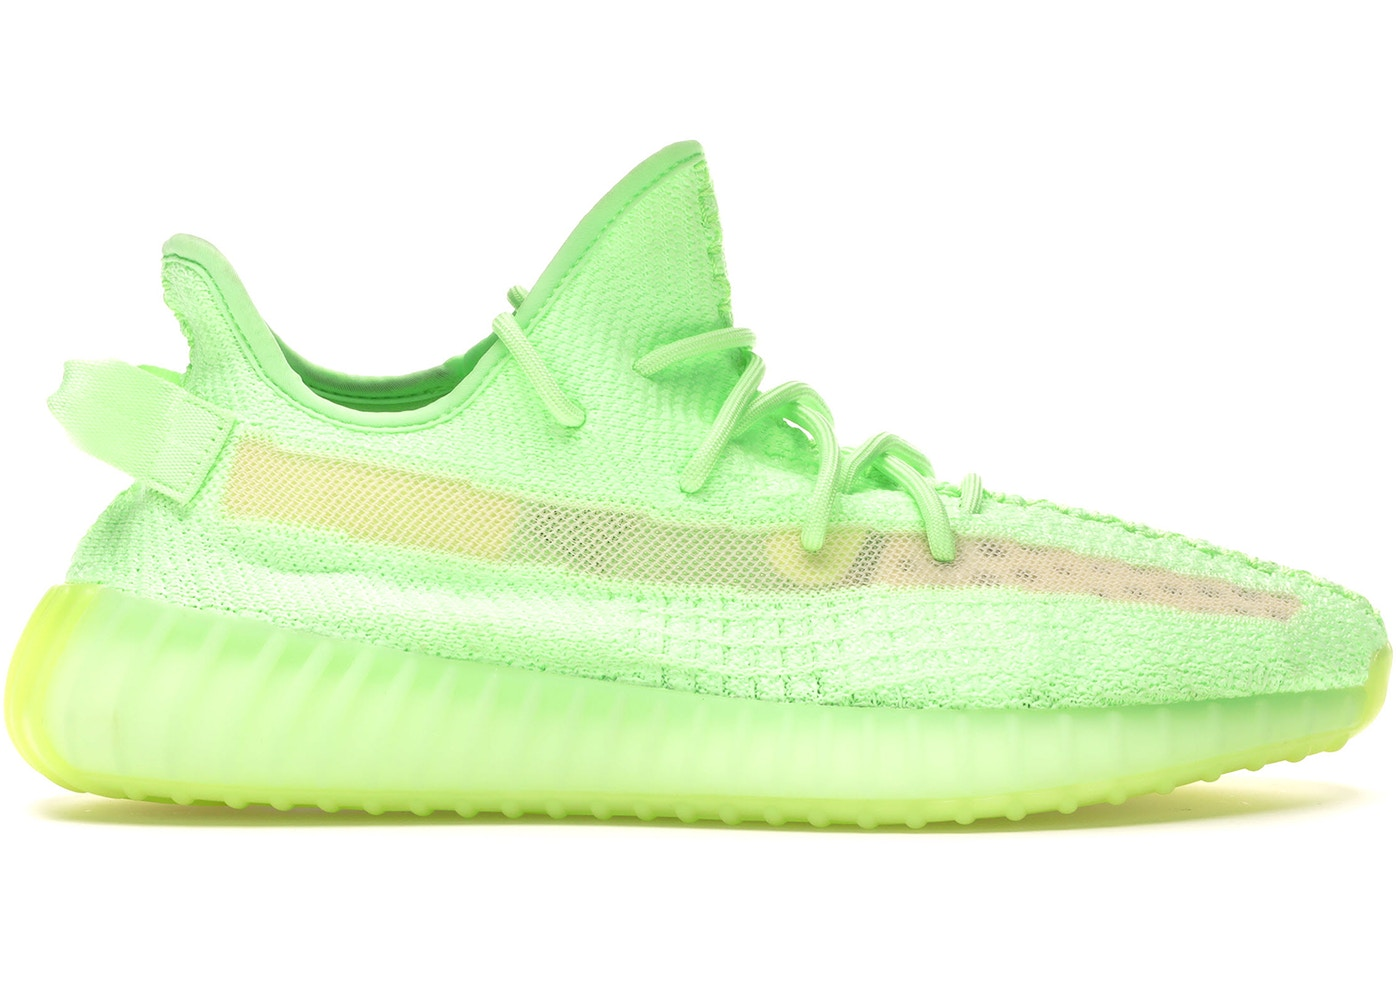 best service 3e5a7 f3d1b adidas Yeezy Size 16 Shoes - Average Sale Price